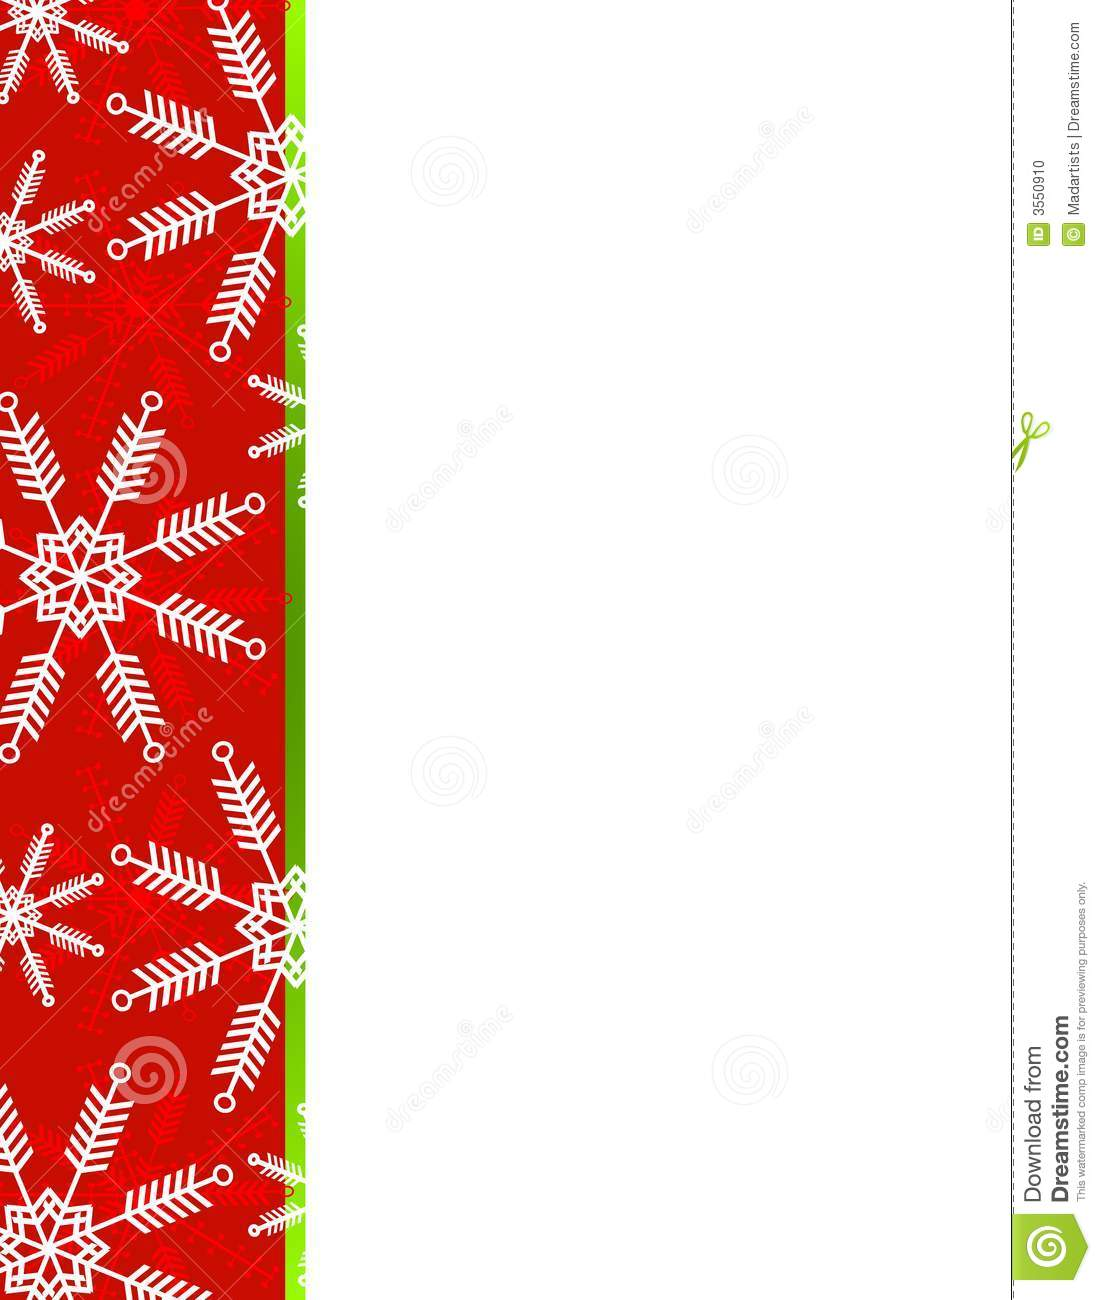 snowflakes christmas border stock illustration illustration of rh dreamstime com